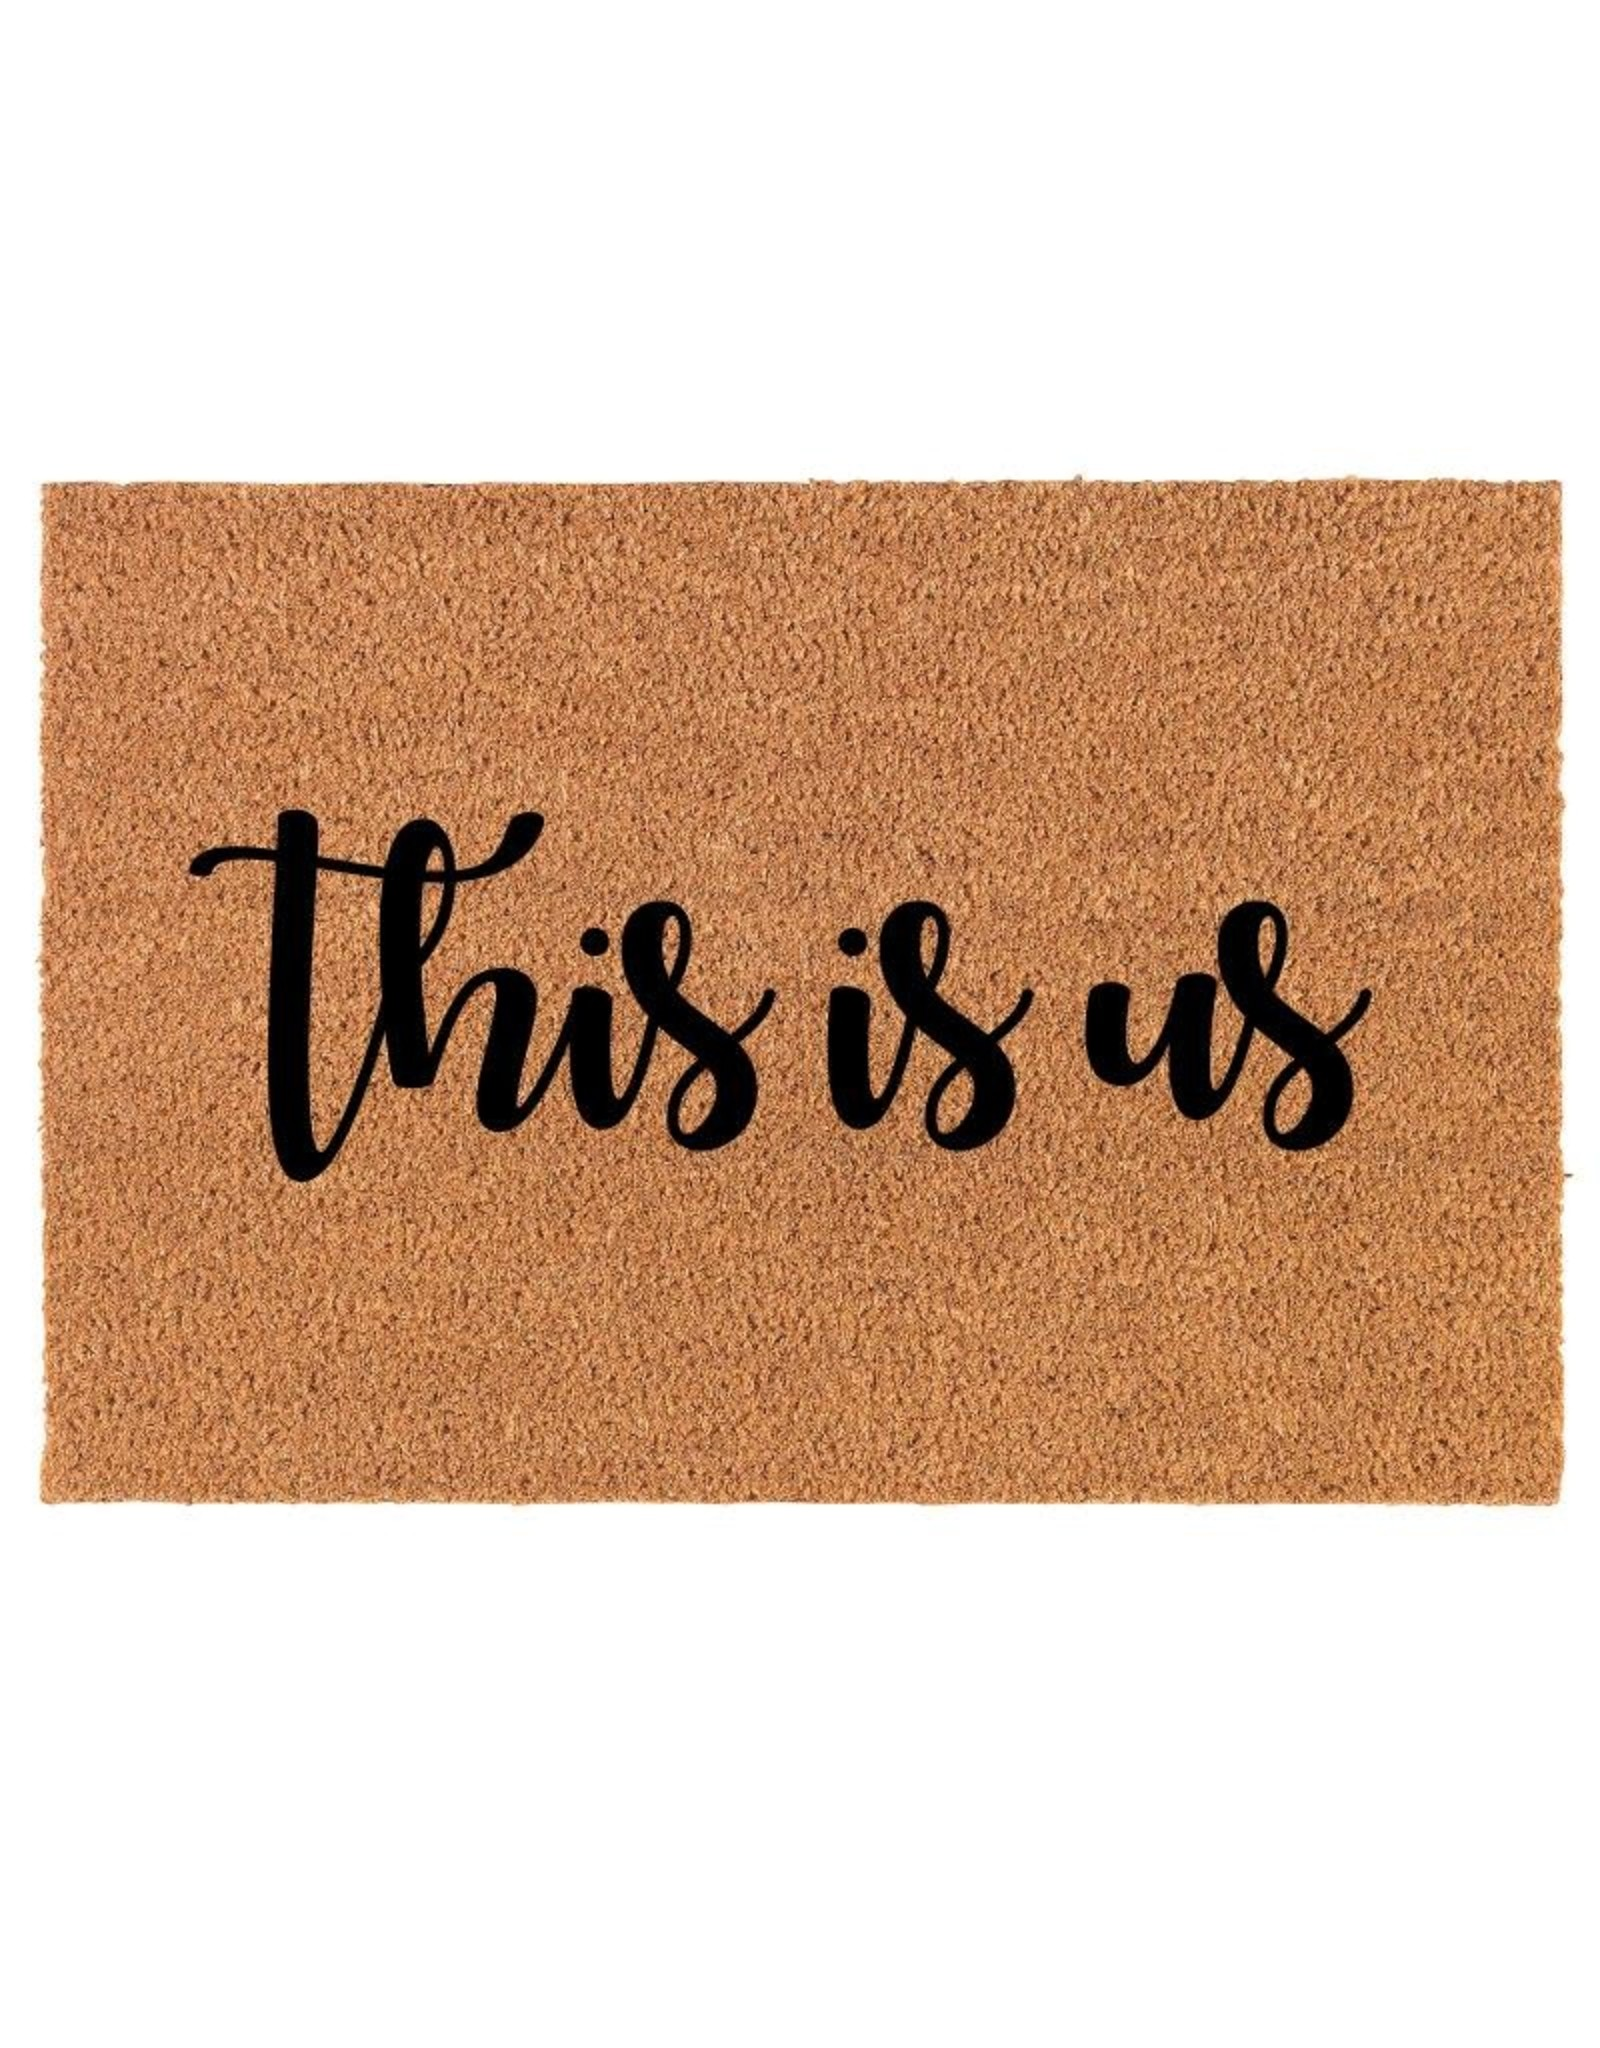 TCE This is us Doormat